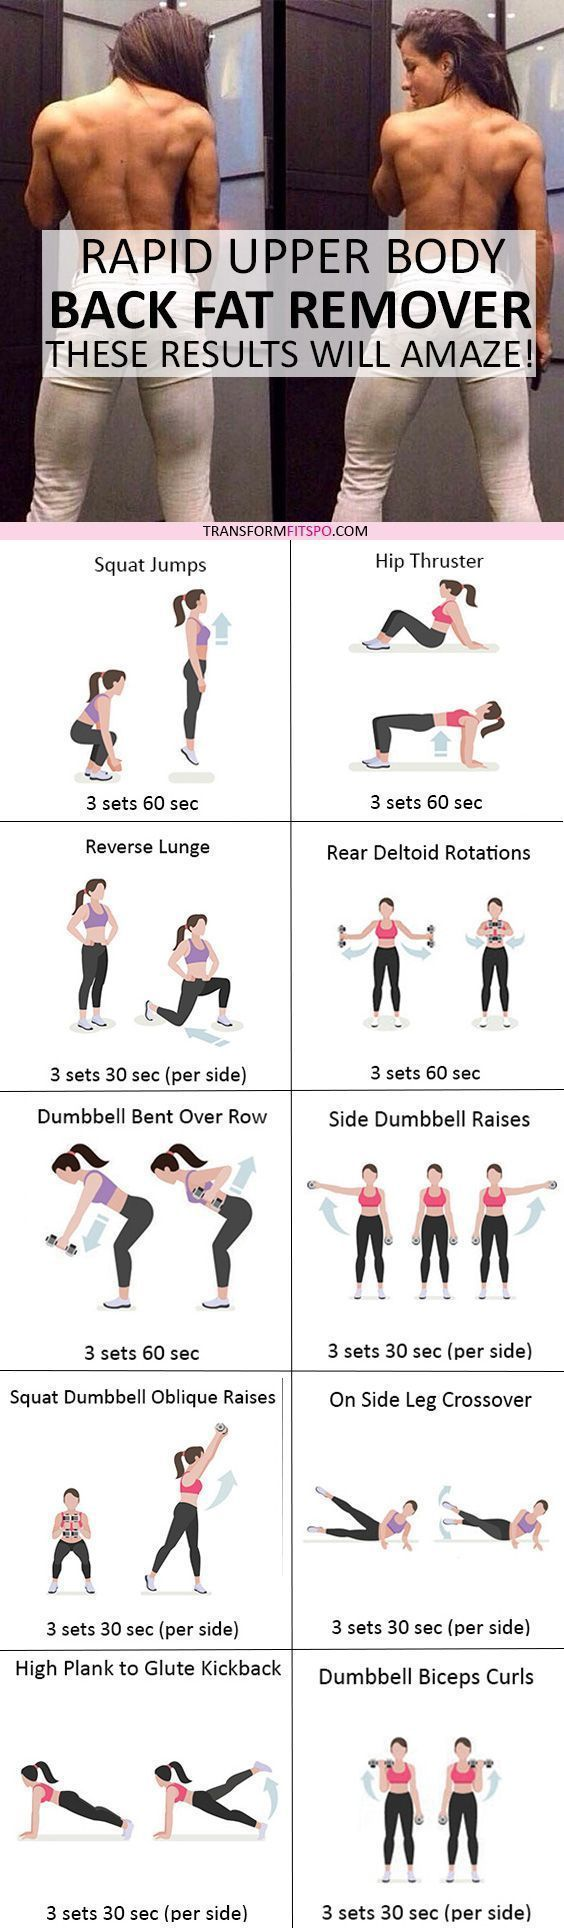 #womensworkout #building #workouts #workout #fitness #female #click #repin #share #toned #back #this...